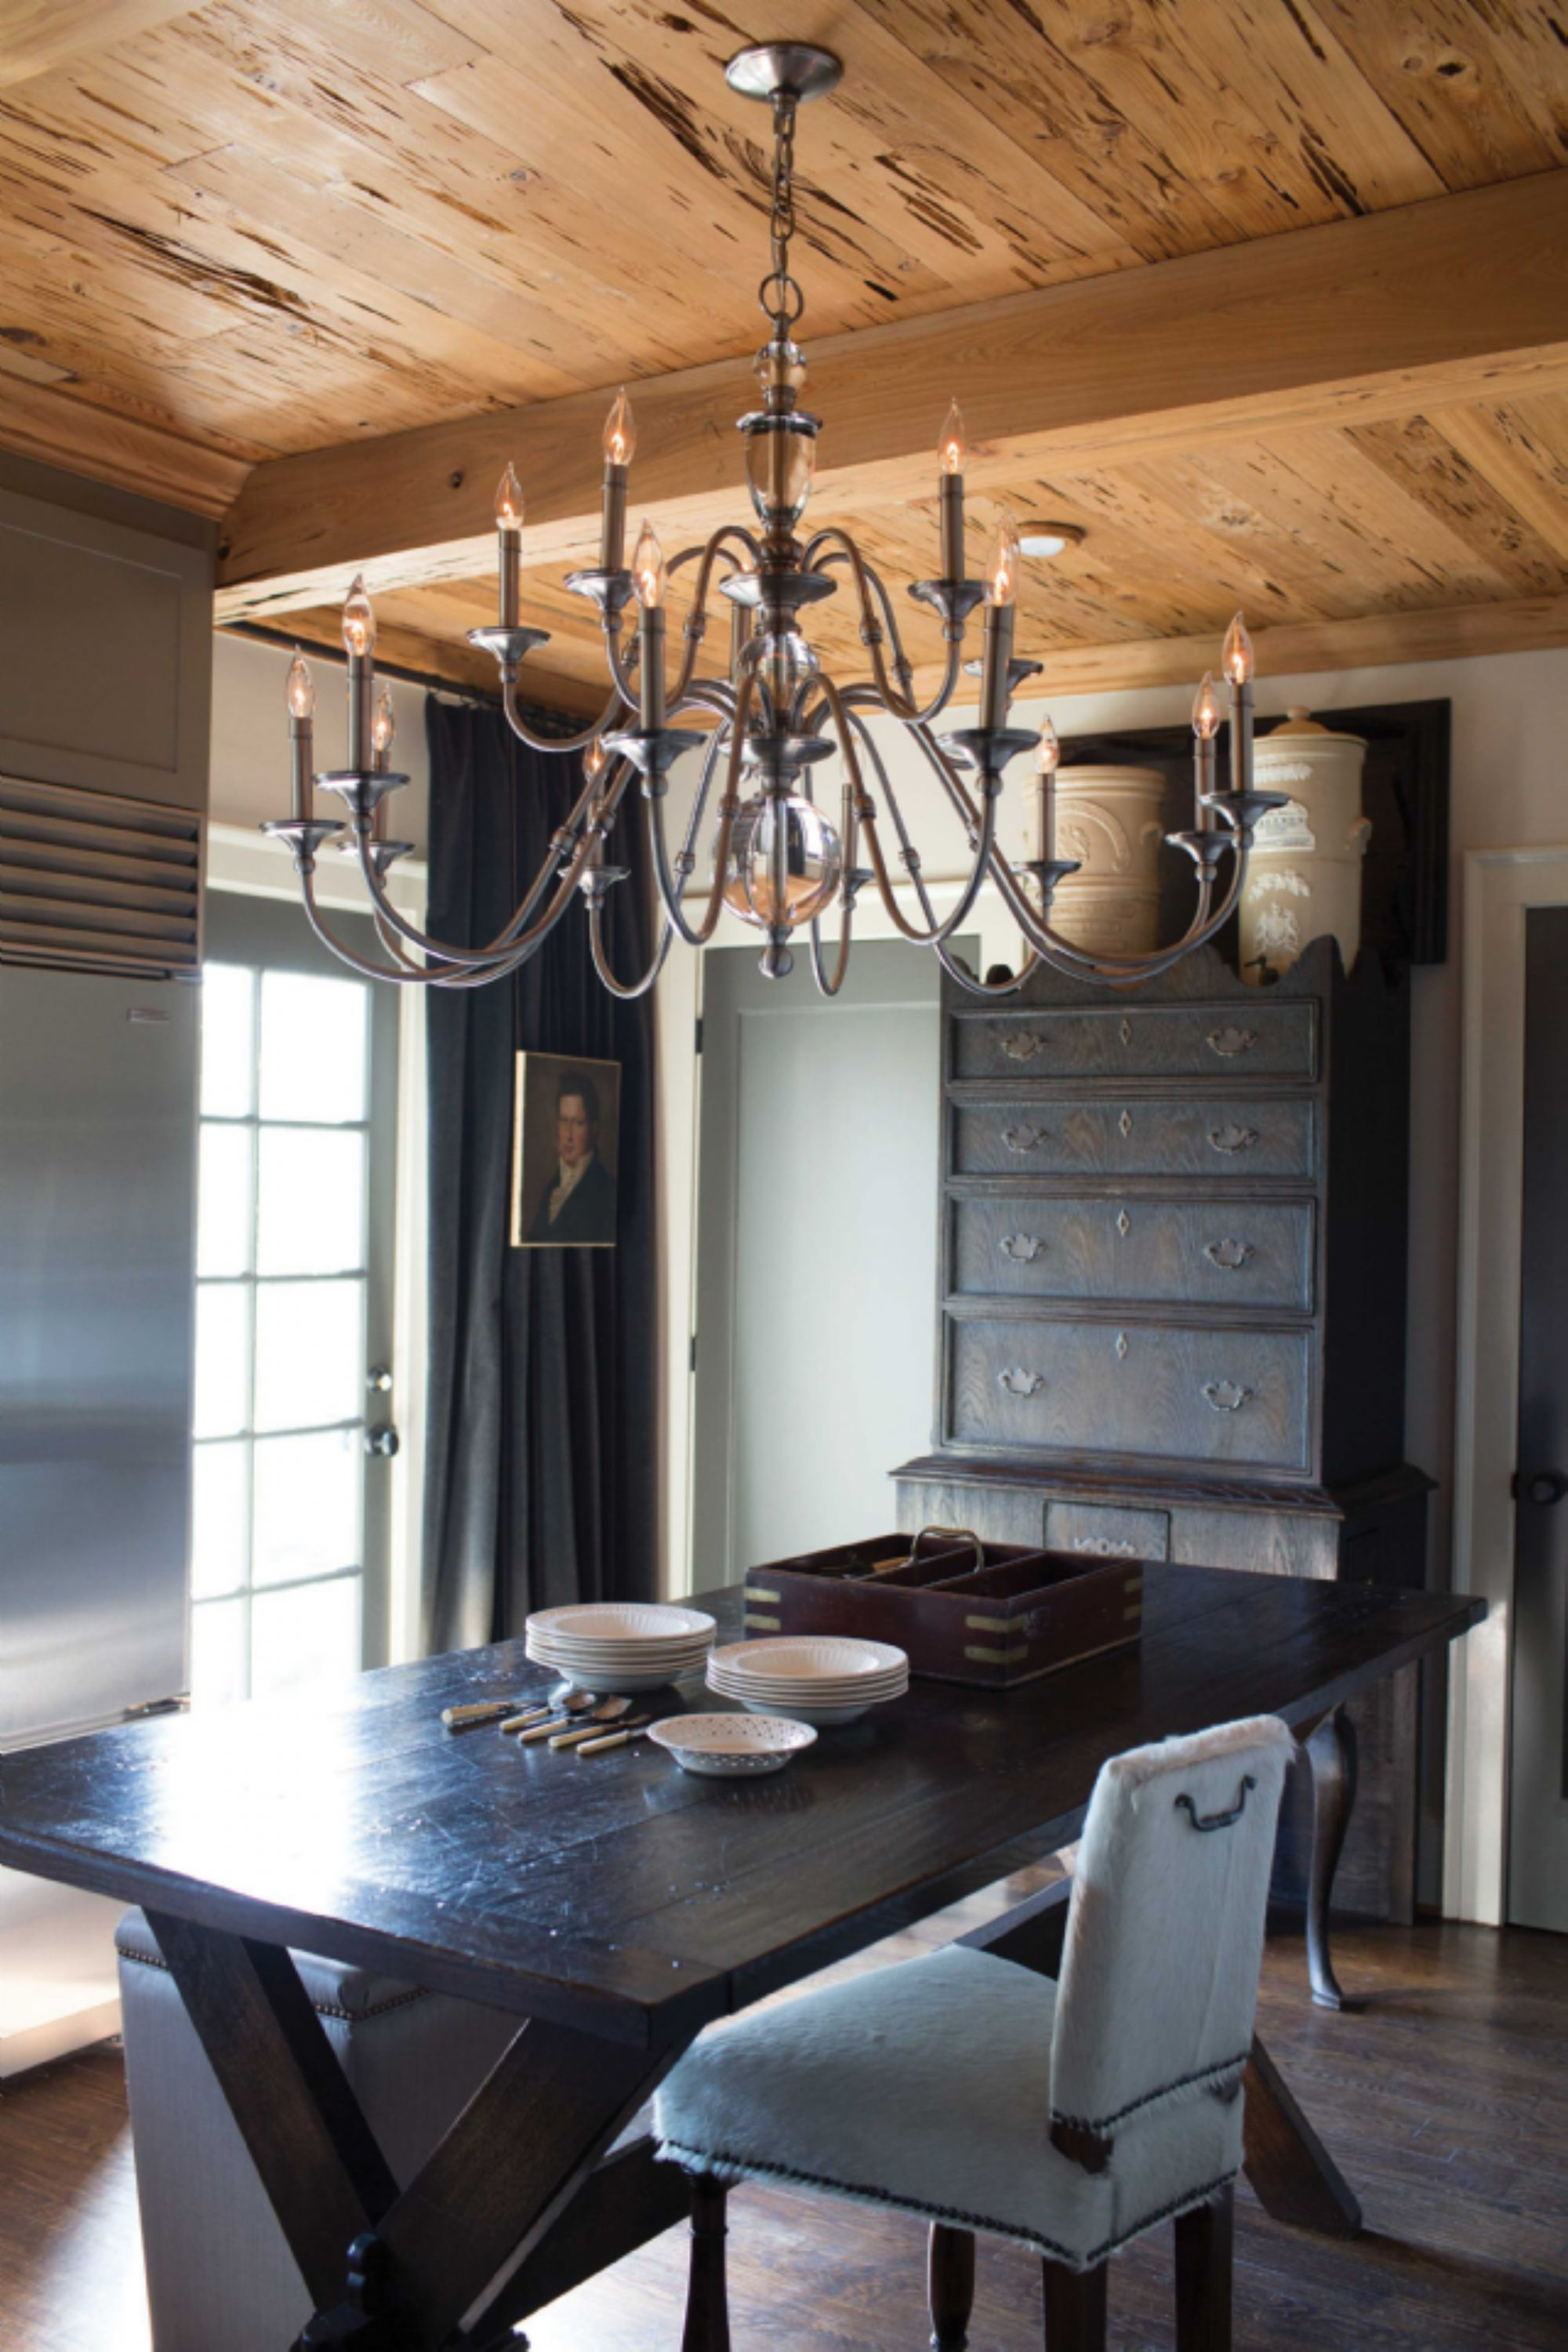 Hinkley lighting eleanor collection chandelier in polished antique hinkley lighting eleanor collection chandelier in polished antique nickel aloadofball Image collections